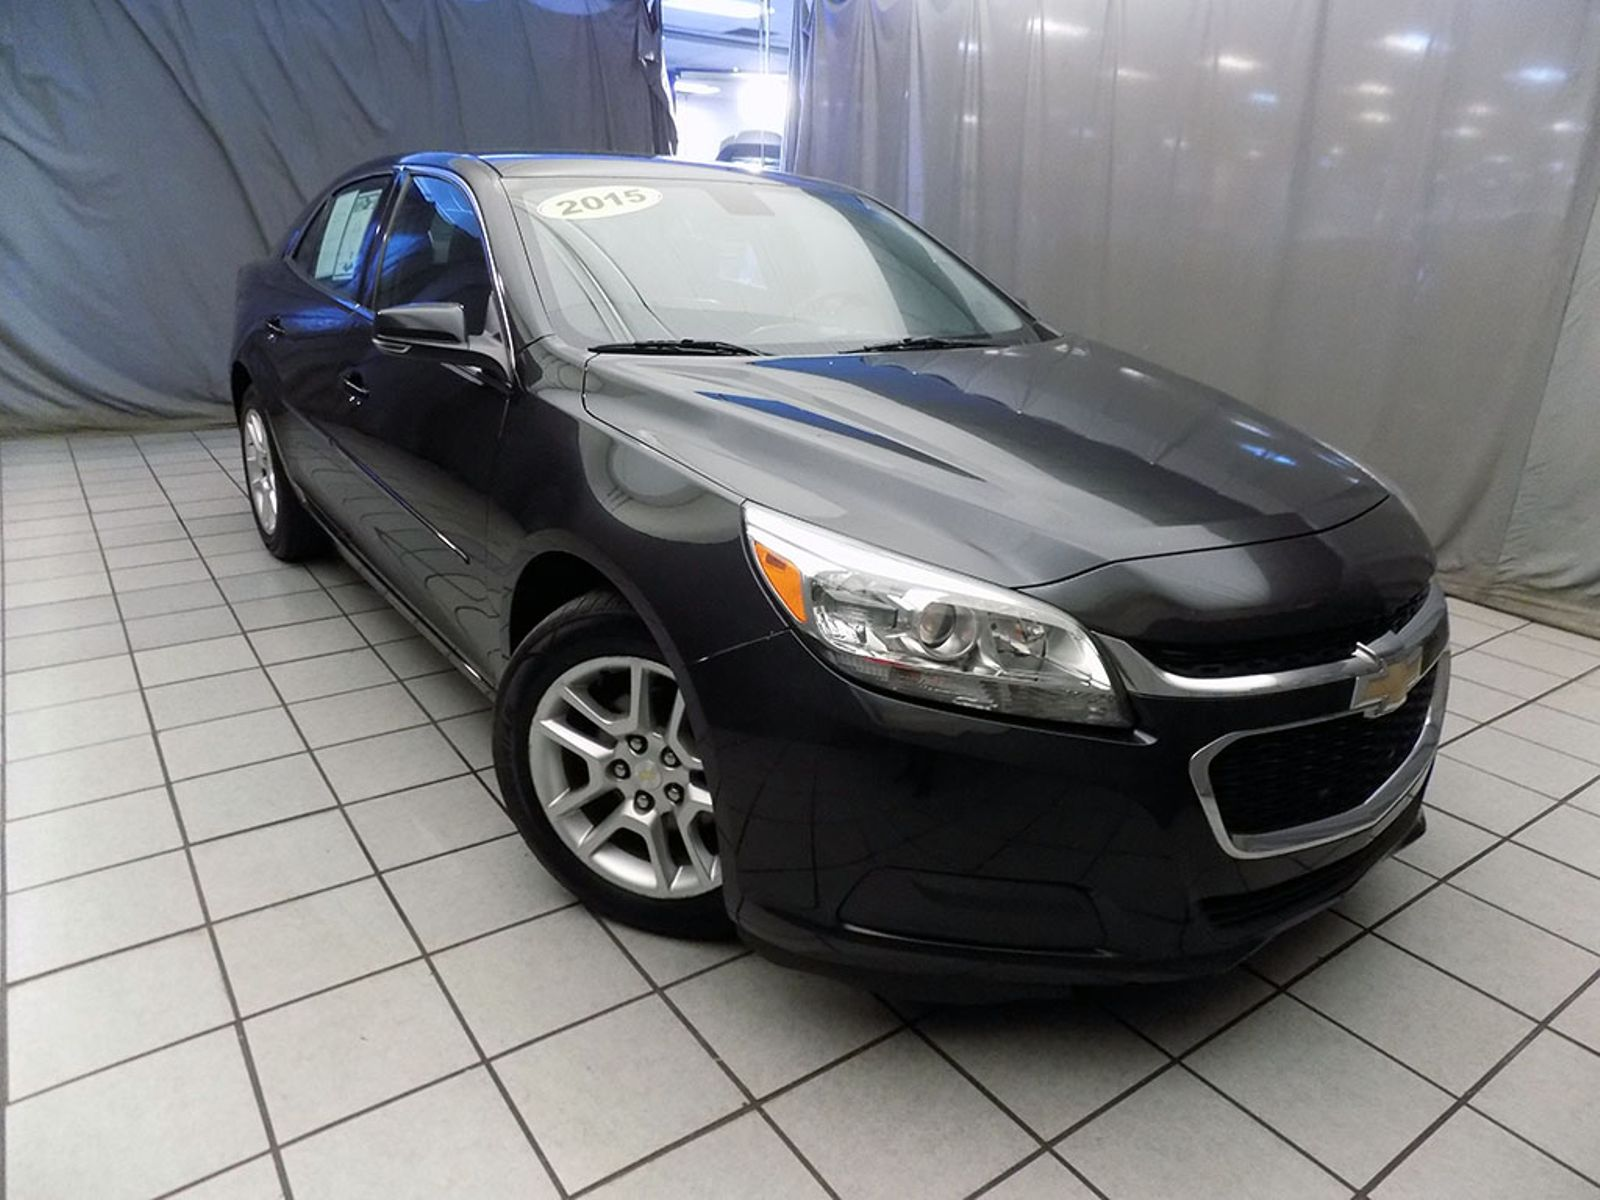 2015 Chevrolet Malibu LT city Ohio North Coast Auto Mall of Cleveland